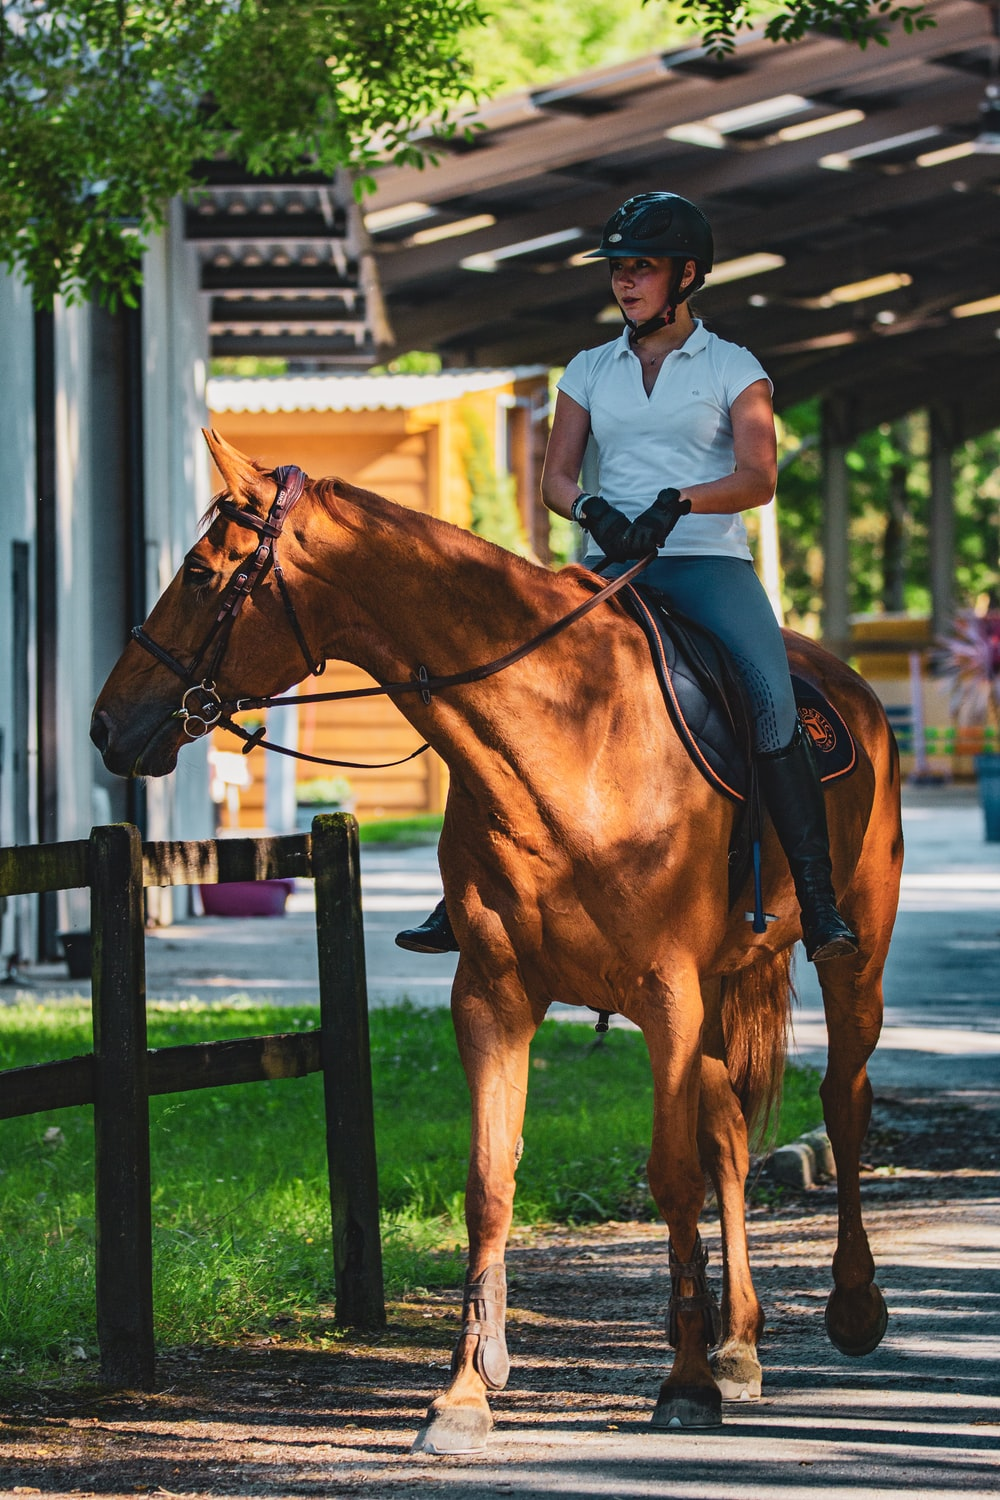 man in white polo shirt riding brown horse during daytime